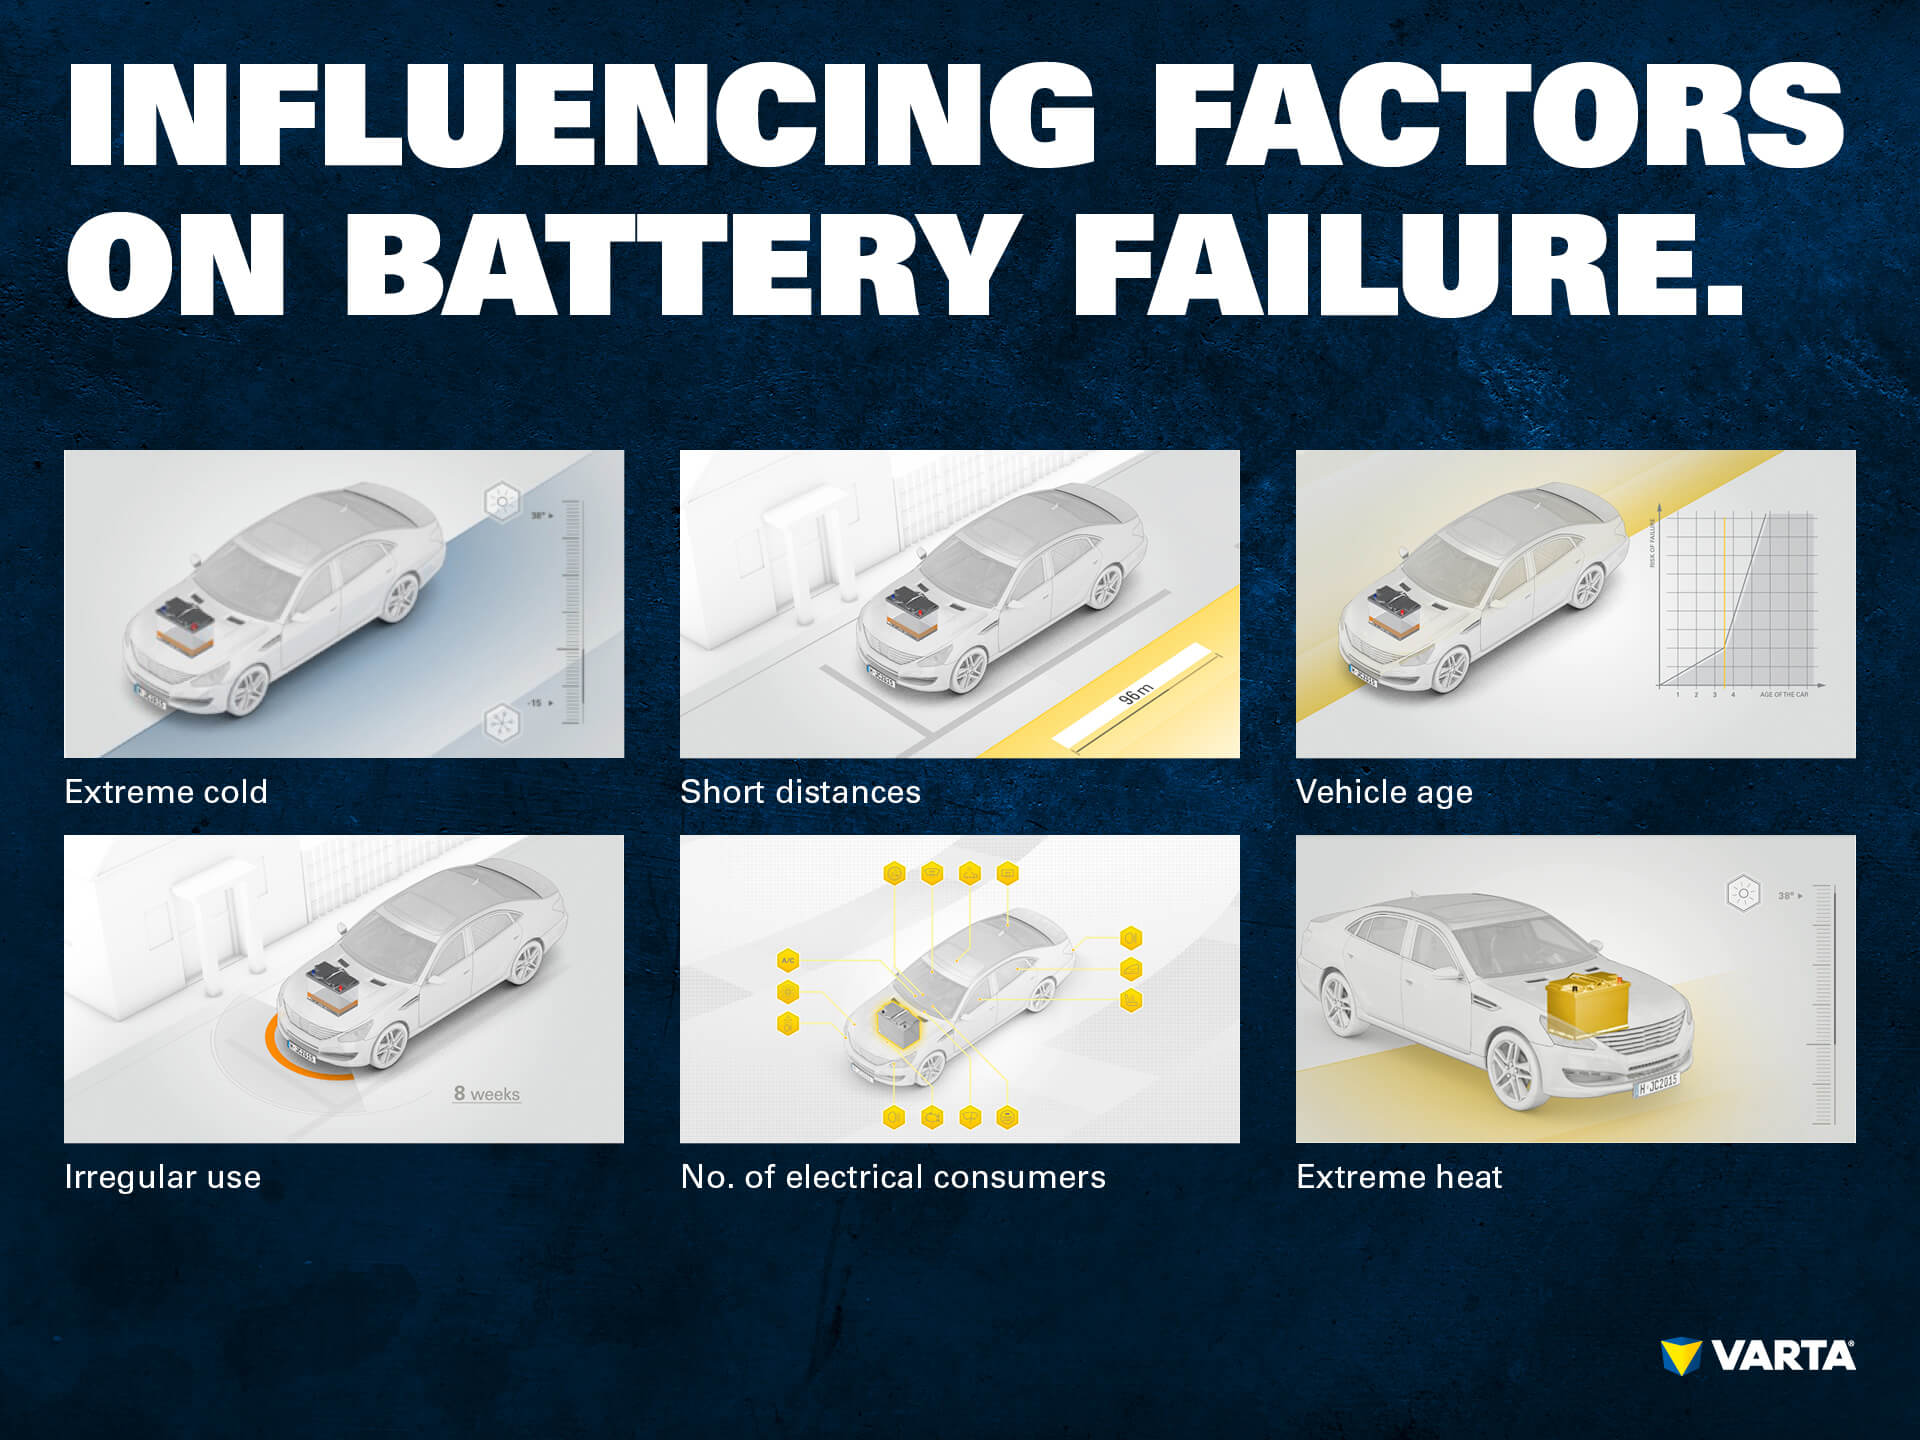 Influencing factors on battery failure